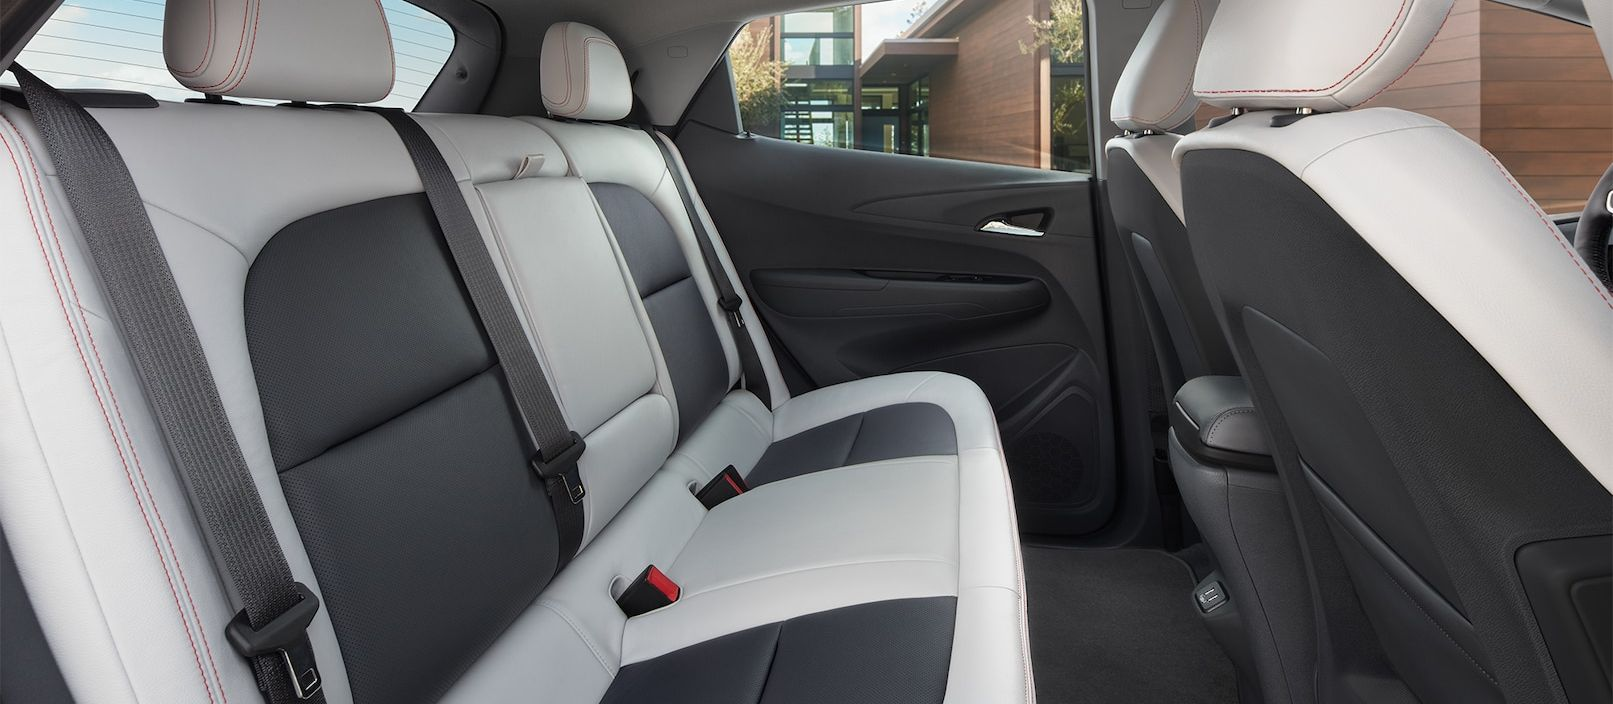 Comfort For All in the Chevrolet Bolt EV